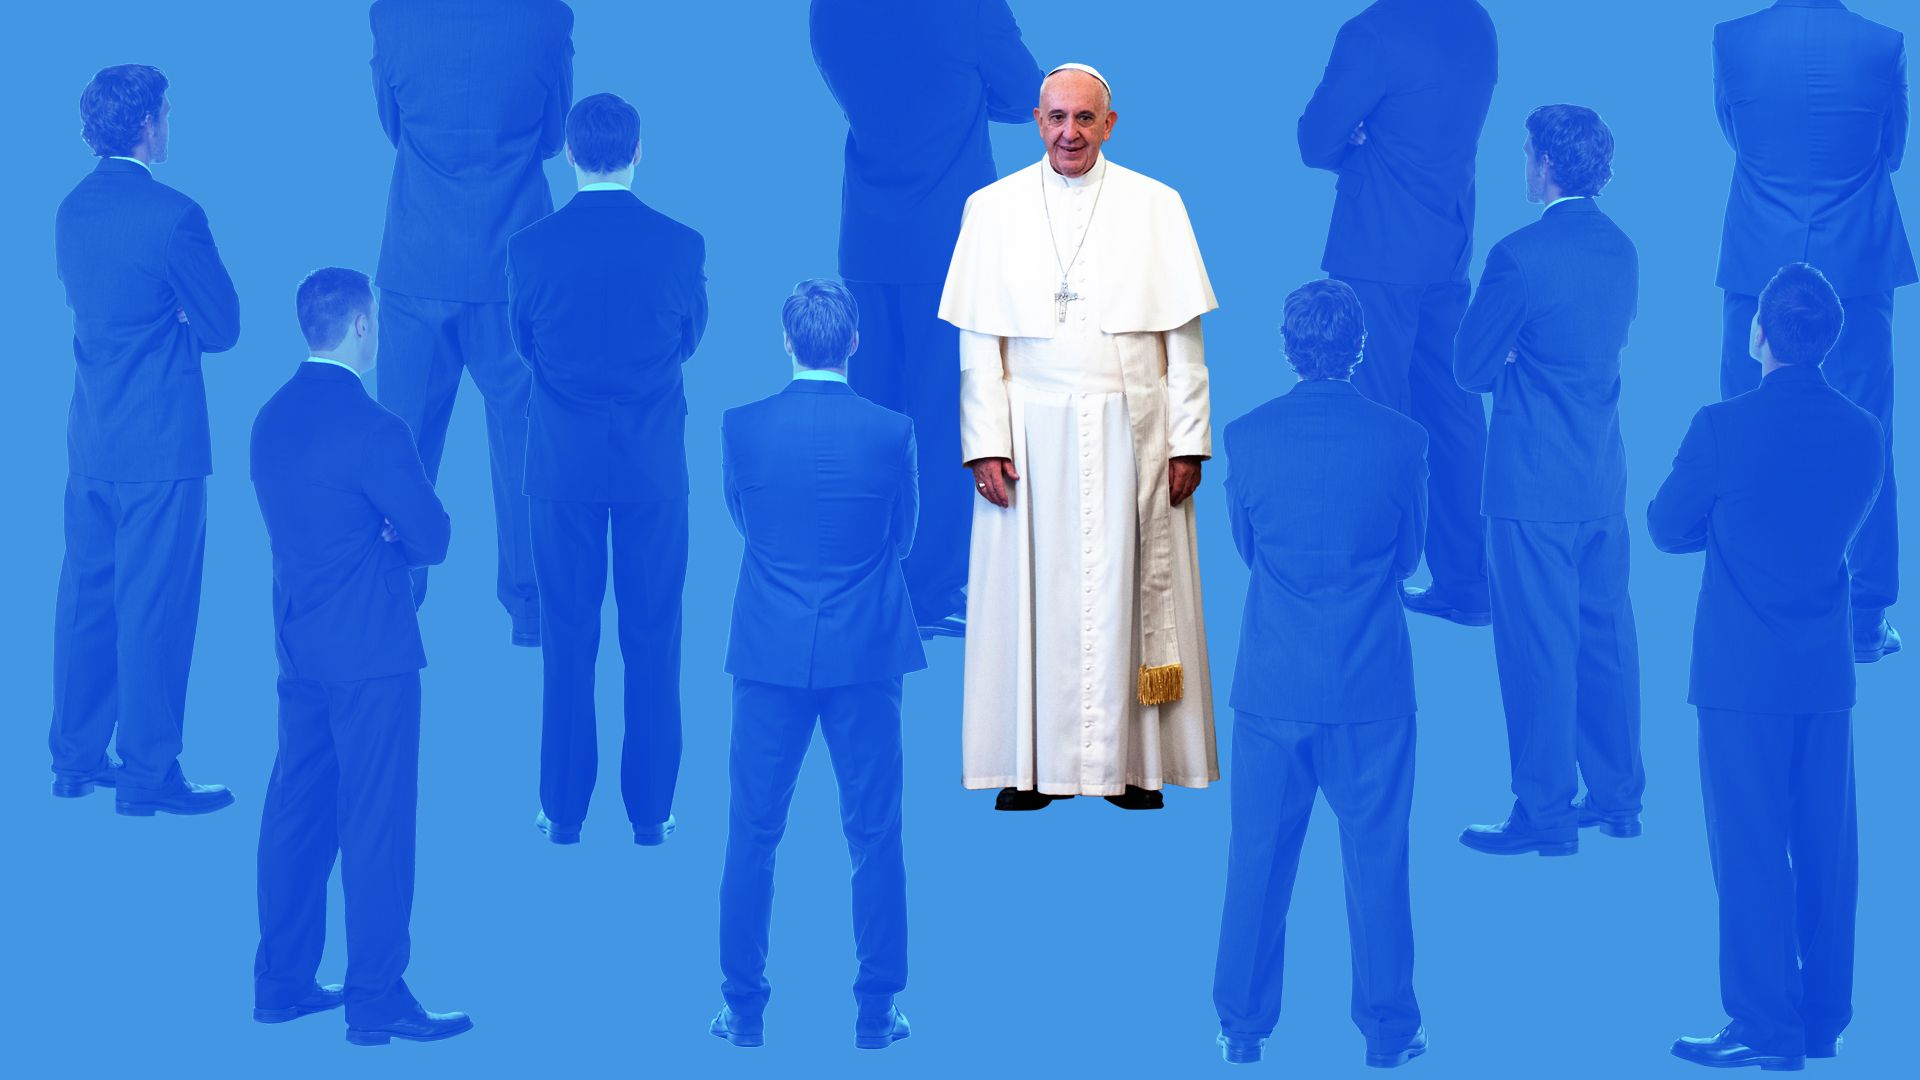 Illustration for story on papal meeting with big oil executives